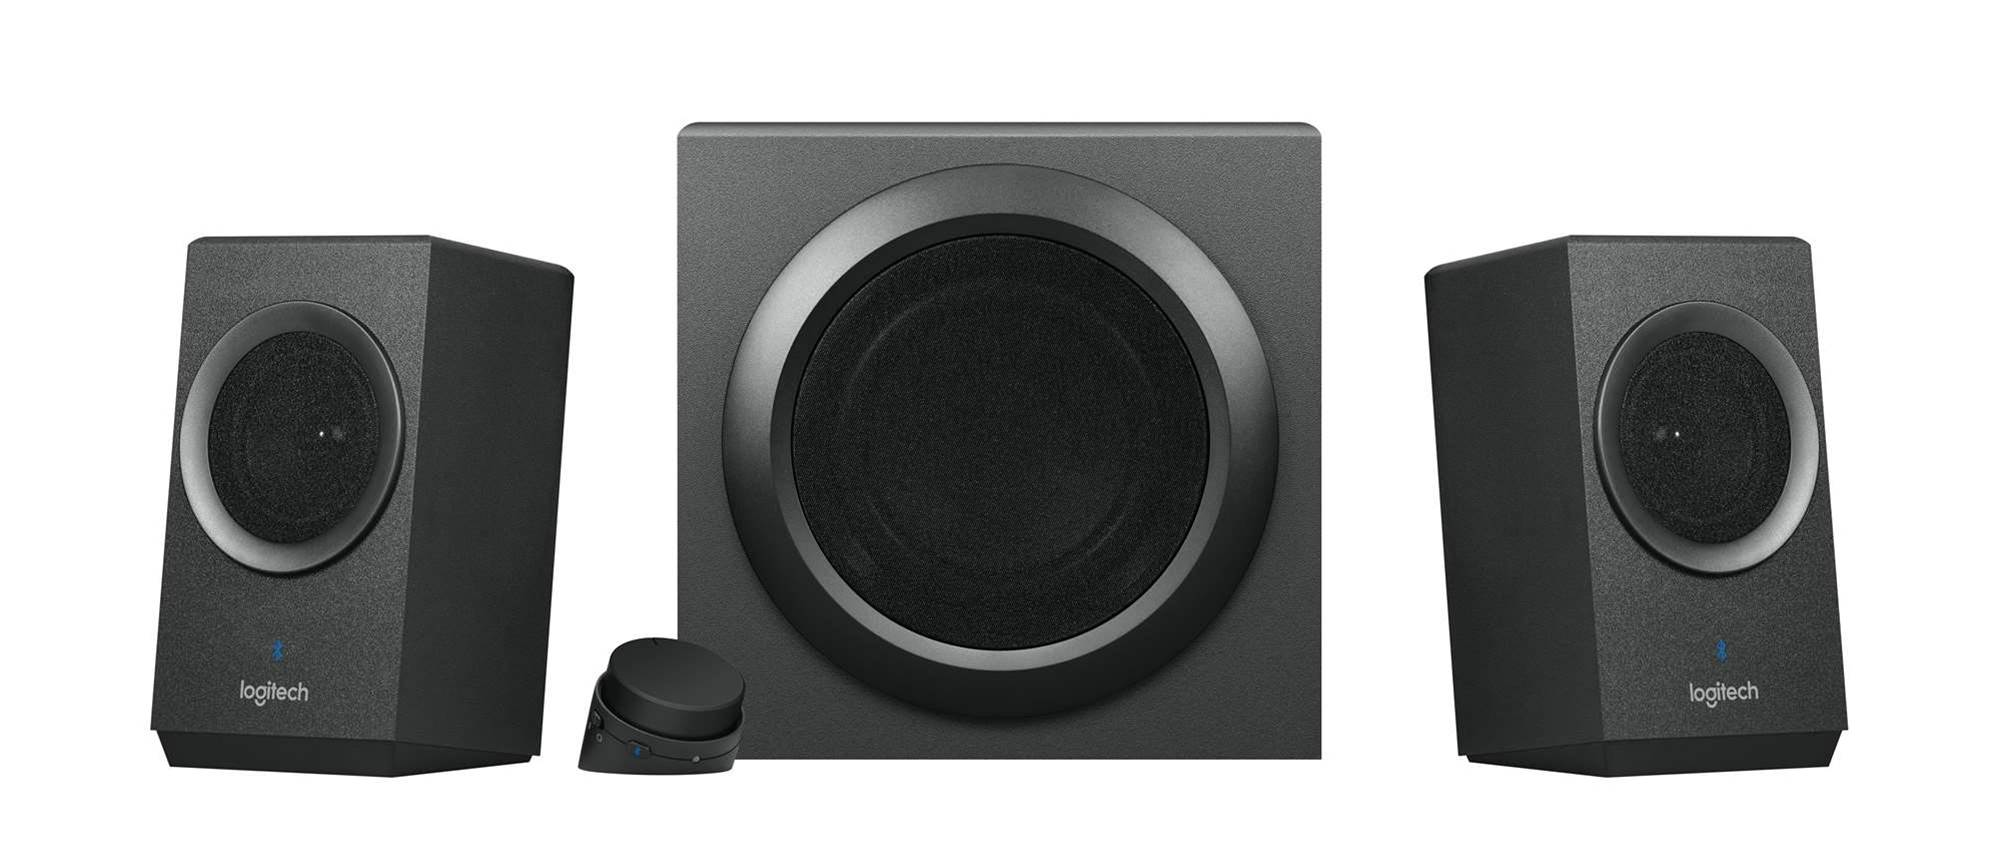 Logitech announces new Bluetooth-enabled Z337 desktop speakers